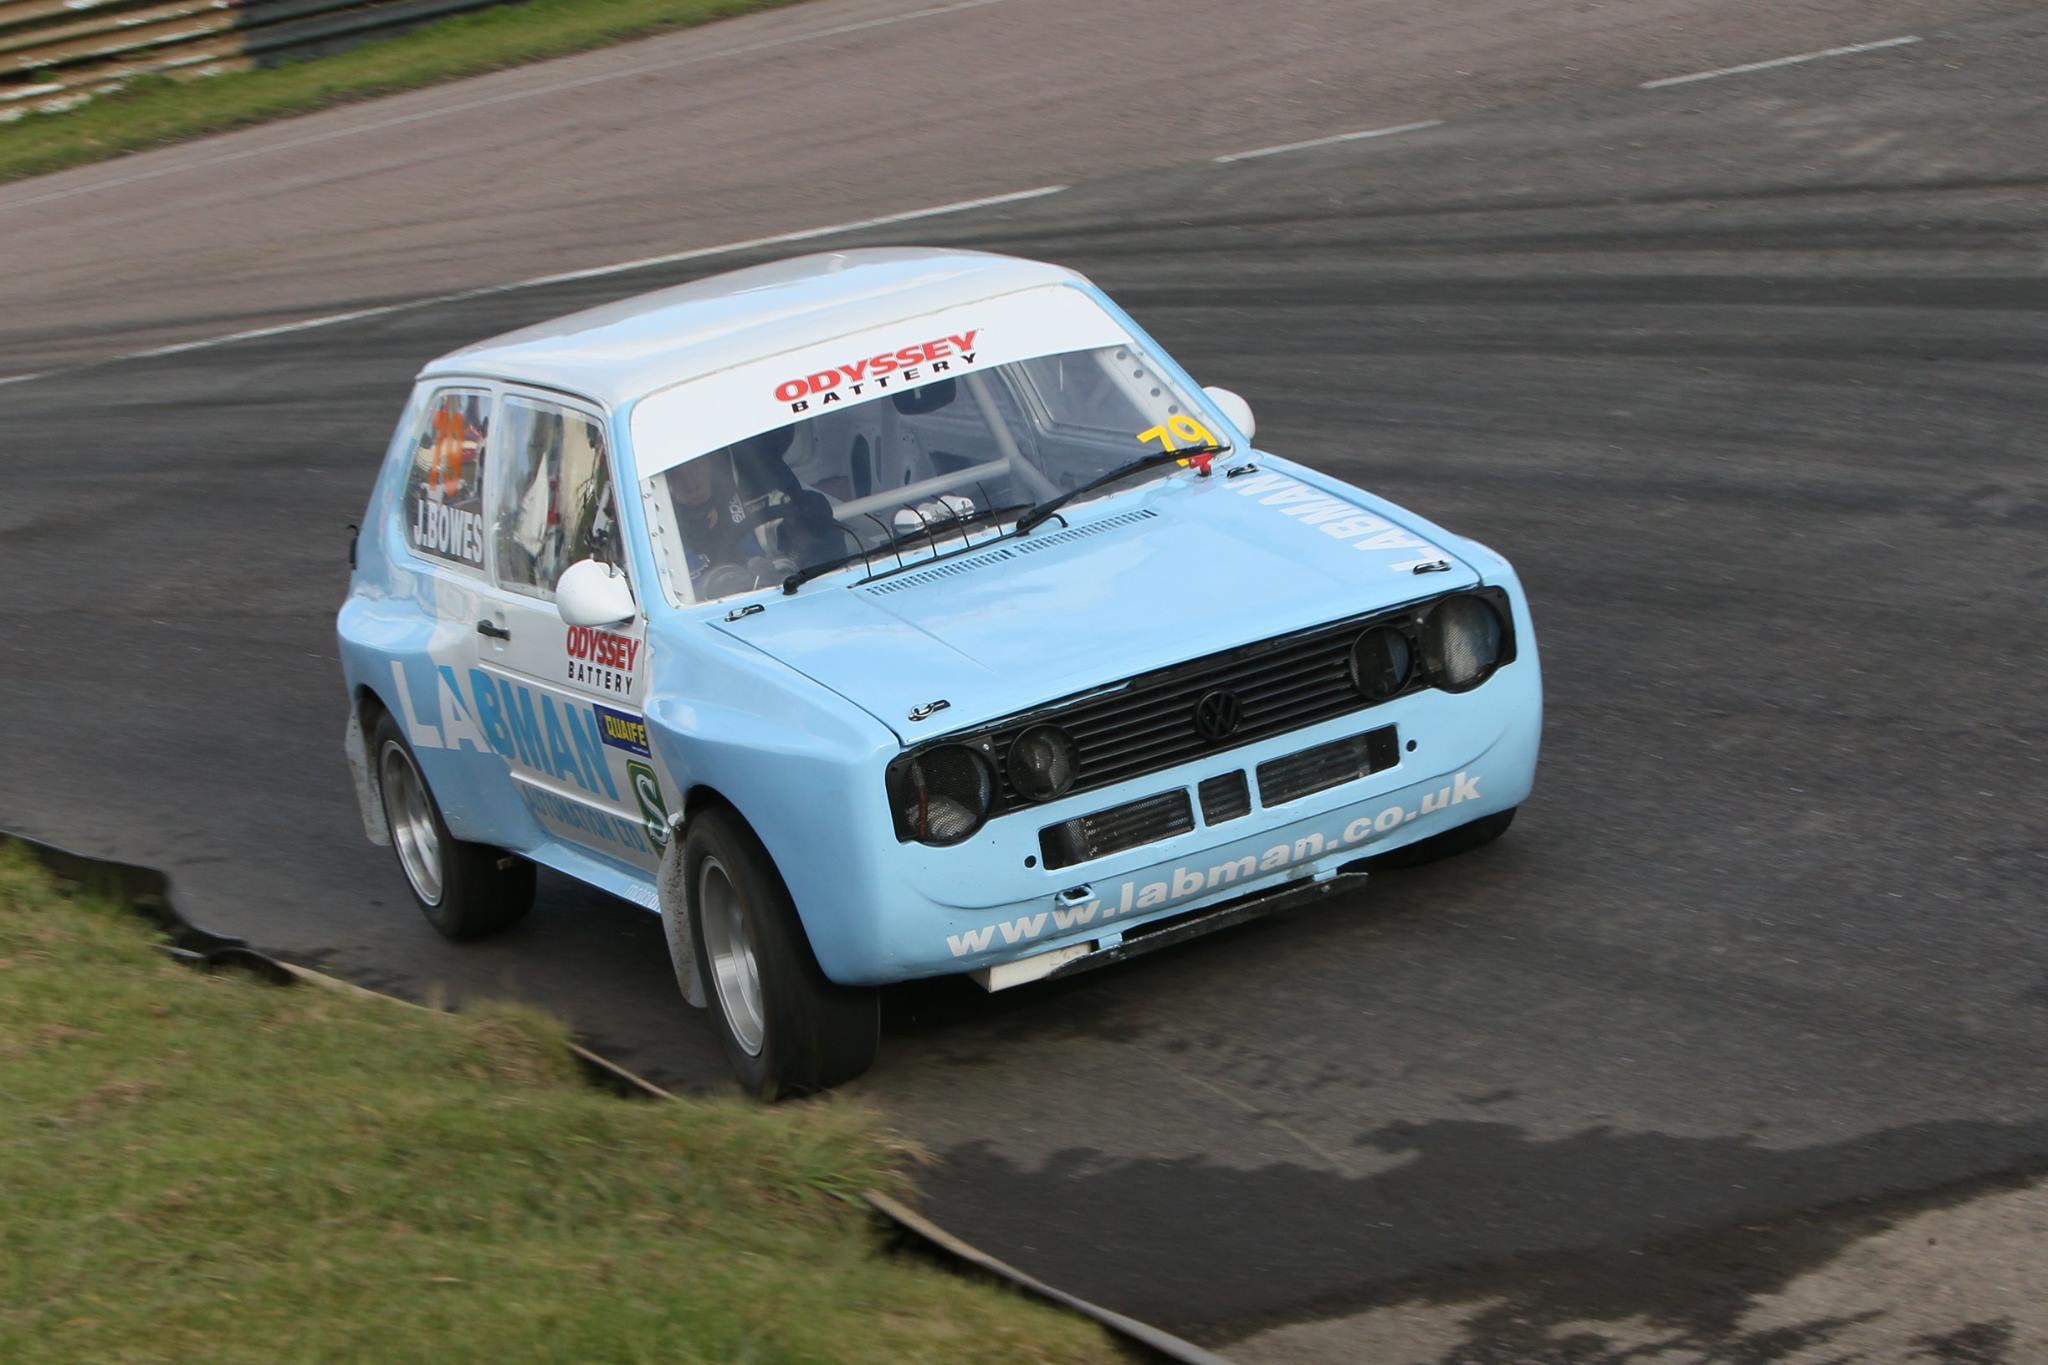 Labman Sponsored MK1 VW Golf Gti Turbo Round 2 Lydden Hill British Retro Rallycross Championship